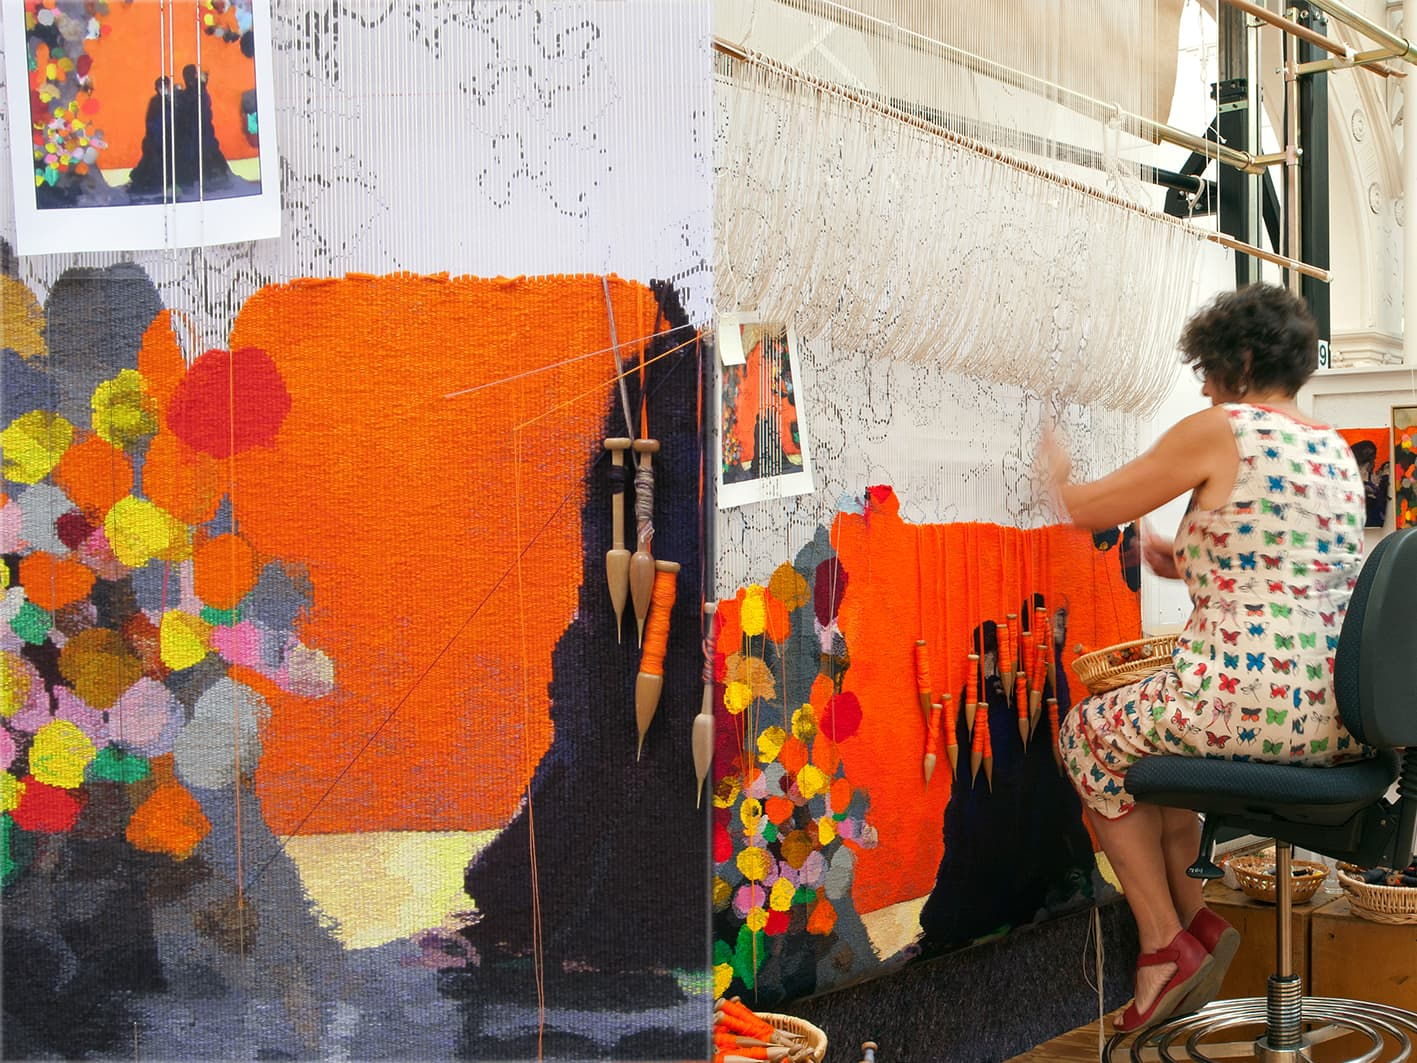 Left: Detail of 'Rome' designed by Brent Harris in 2012 and woven by Sue Batten. Right: ATW weaver Sue Batten working on 'Rome' designed by Brent Harris in 2012. Photographs: Viki Petherbridge.